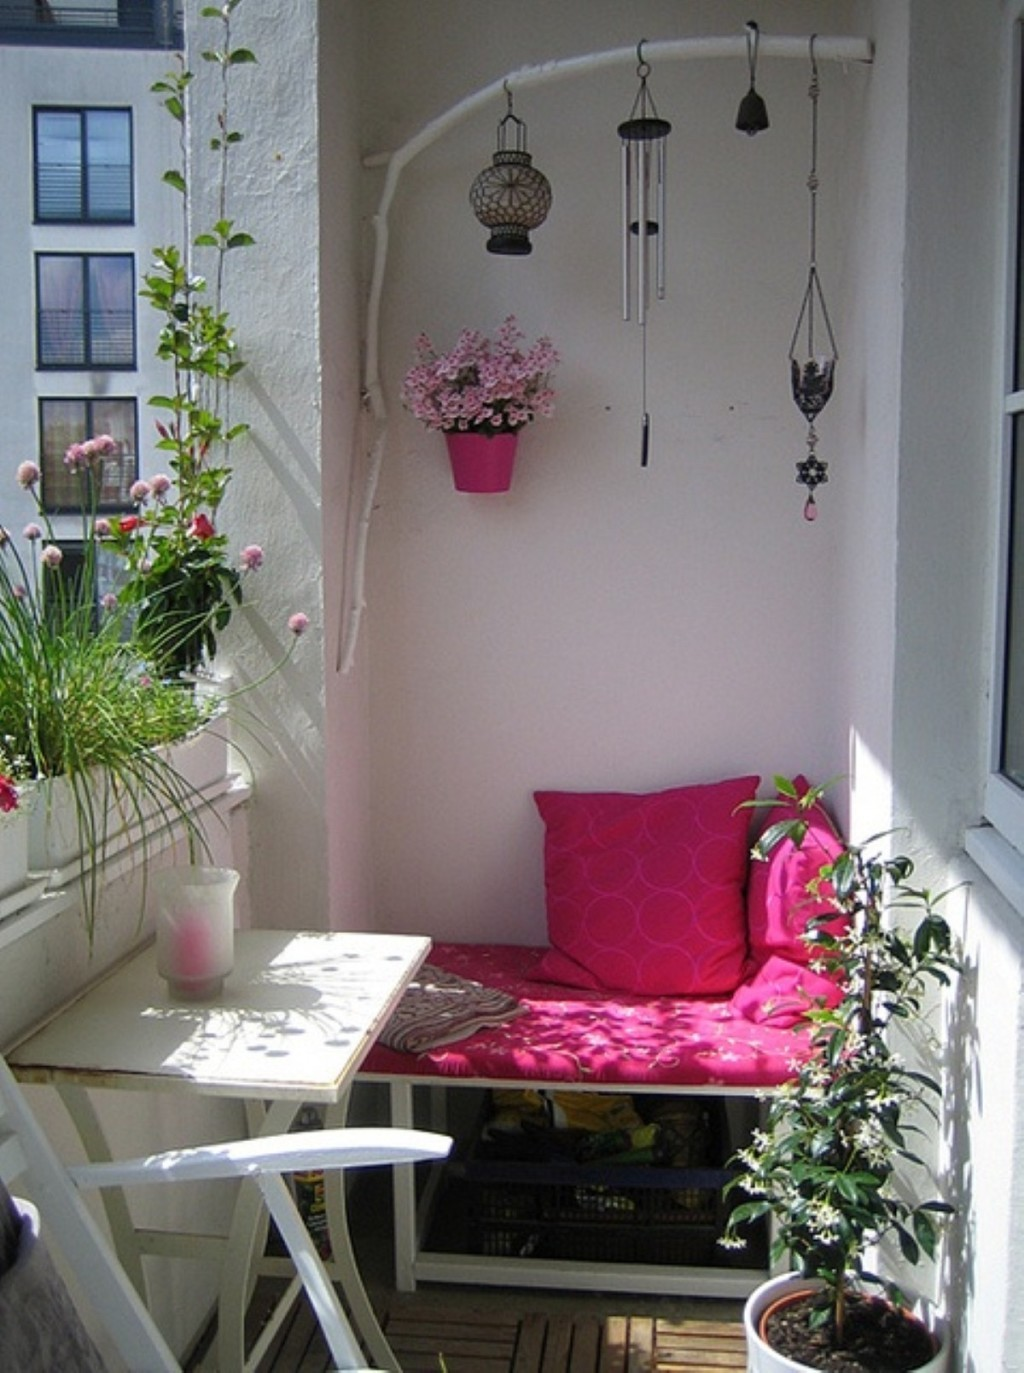 Download ideas to decorate balcony gurdjieffouspensky.com.